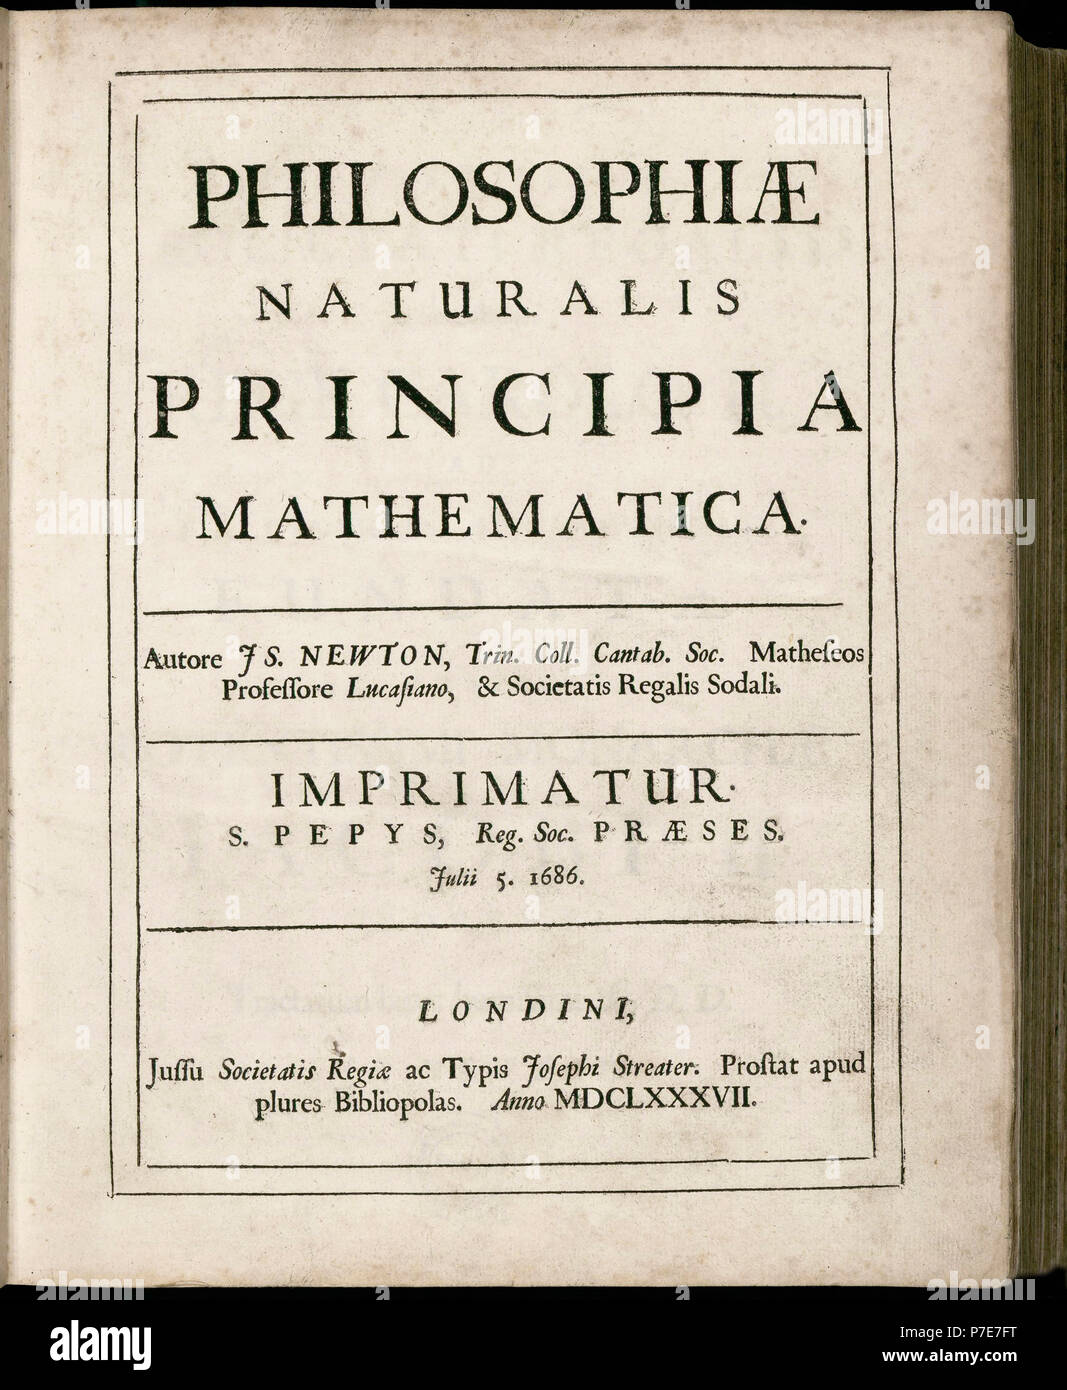 Philosophiæ Naturalis Principia Mathematica, by Isaac Newton.  (Mathematical Principles of Natural Philosophy).  Title page of first edition dated July 5, 1687. - Stock Image